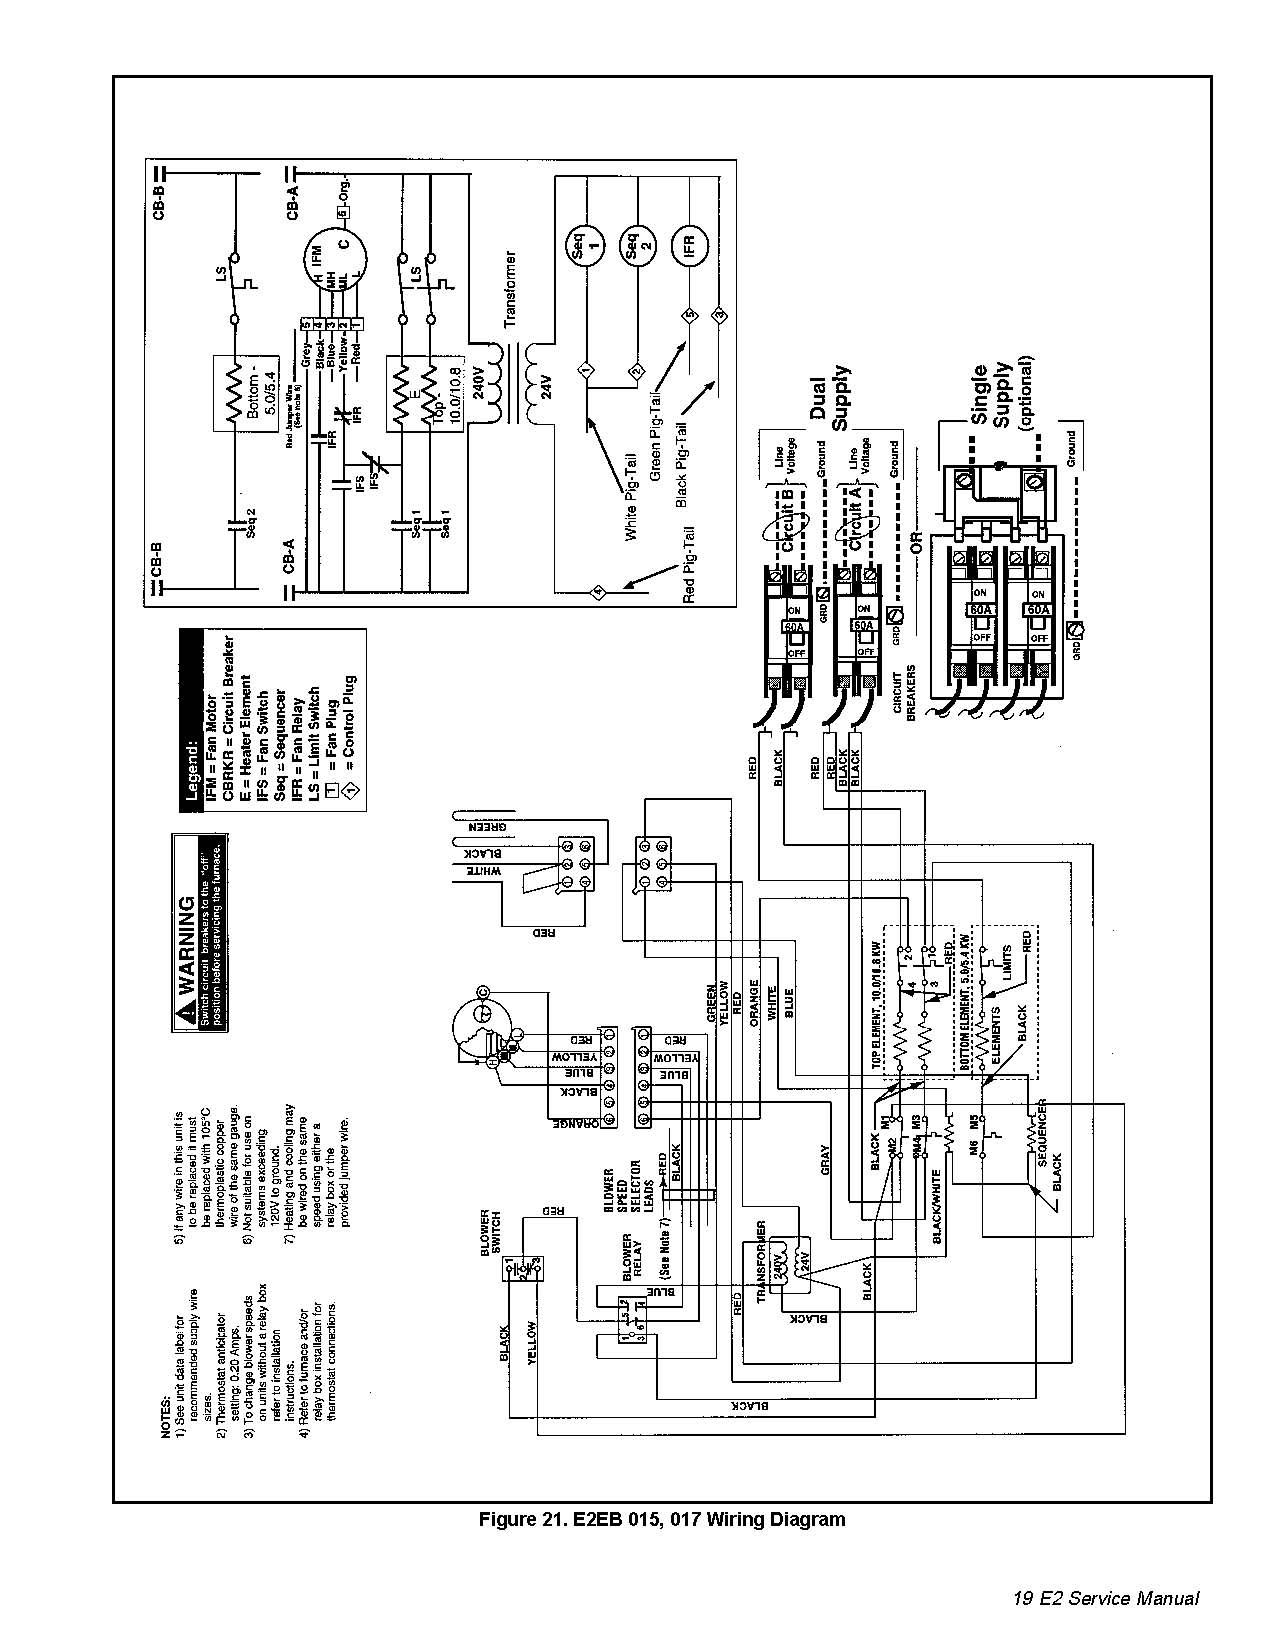 Need Wiring Diagram For Furnace Blower Model E2eh